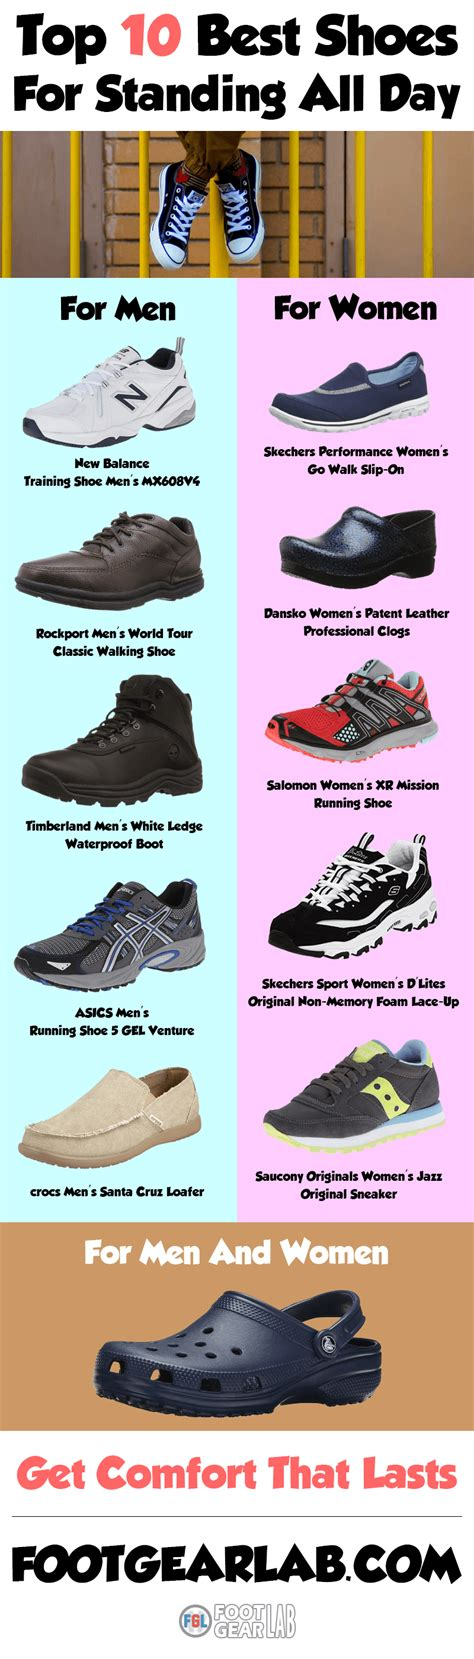 stylish comfortable shoes for standing all day most comfortable shoes for standing on your feet all day